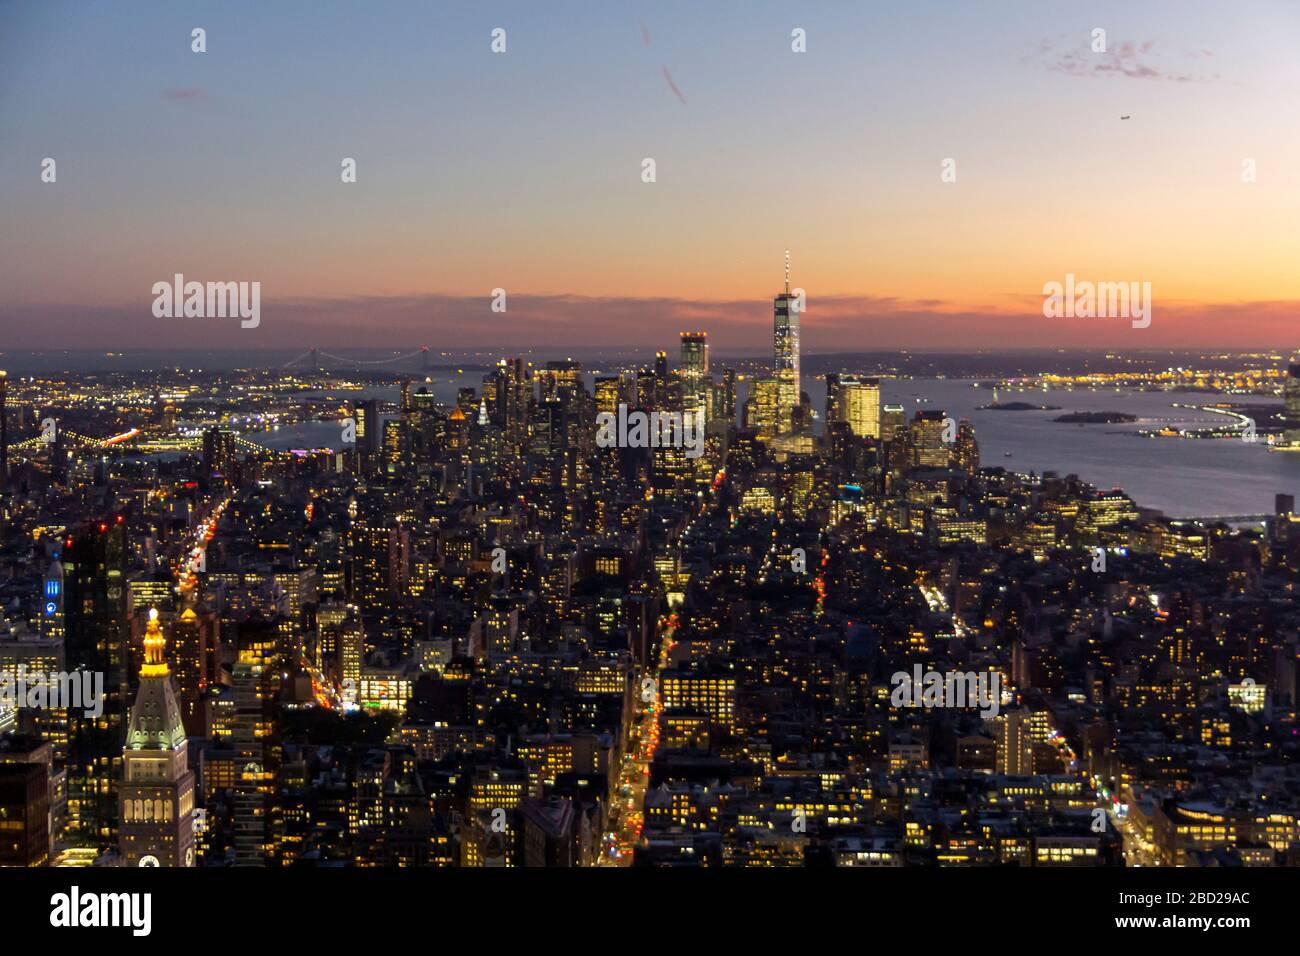 New York, United States: October 16, 2019: New York city view from the top of Empire State building, with lower Manhattan and Hudson river Stock Photo